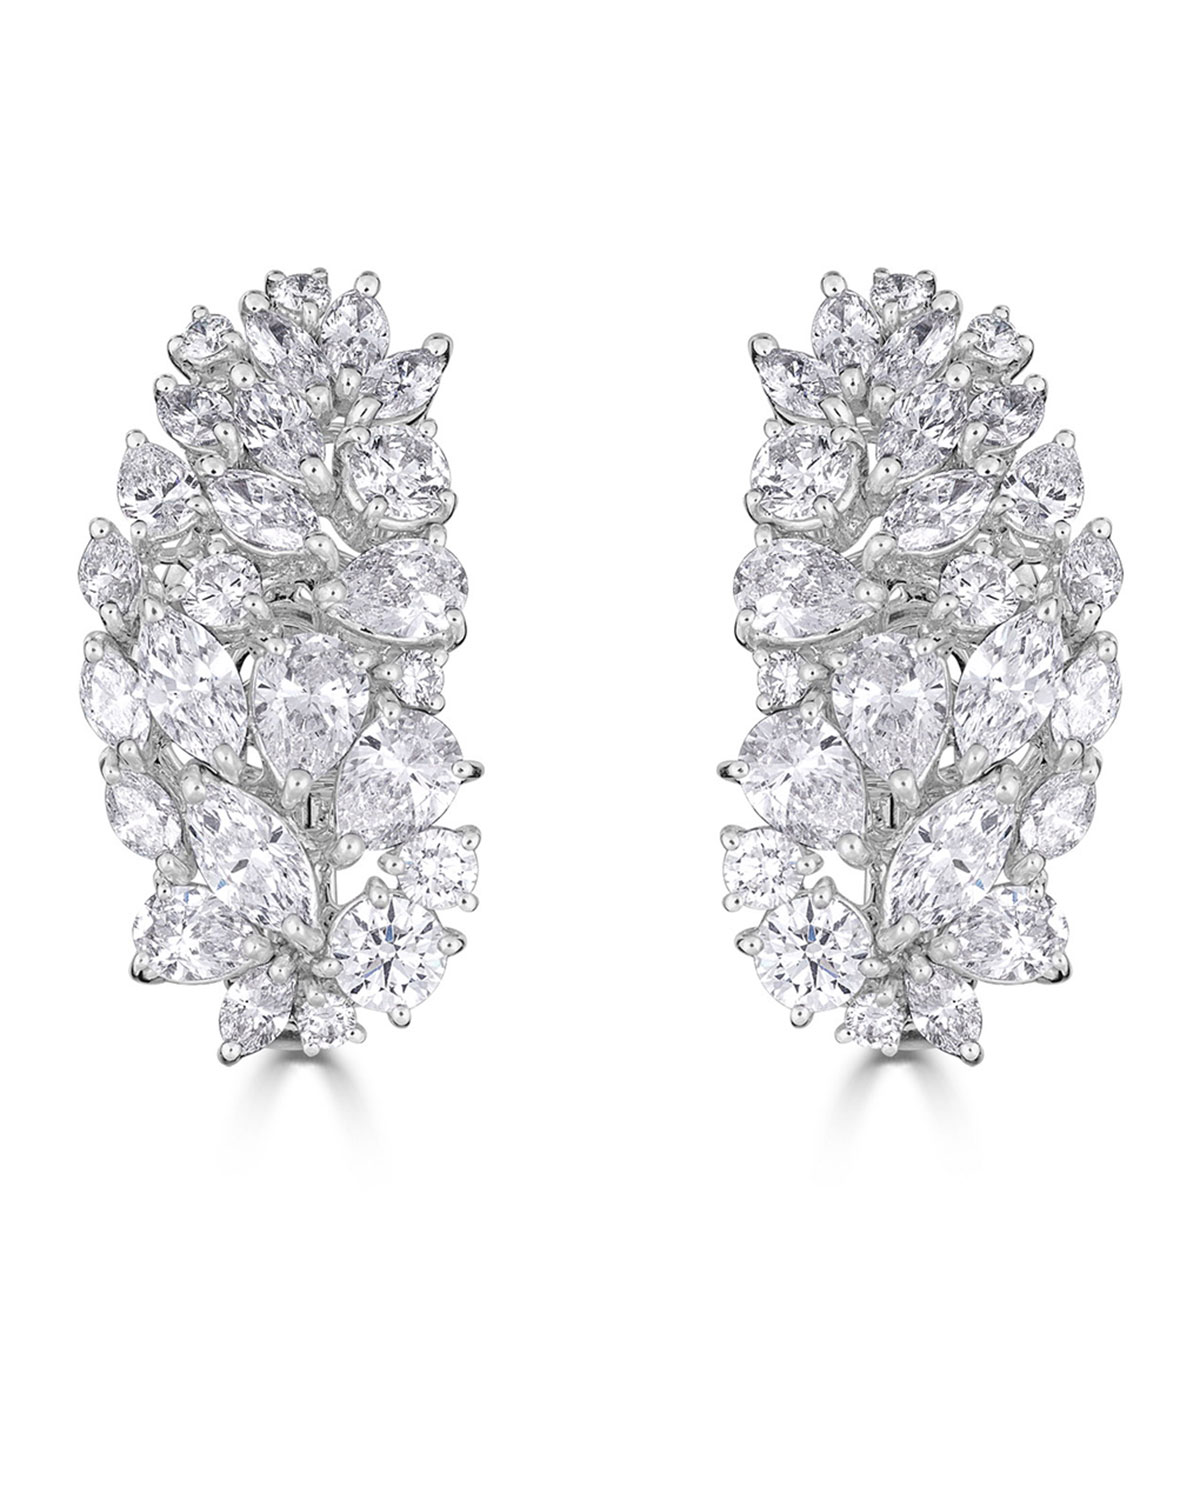 ZYDO Luminal 18K White Gold Diamond Cluster Earrings, 6.8Tcw